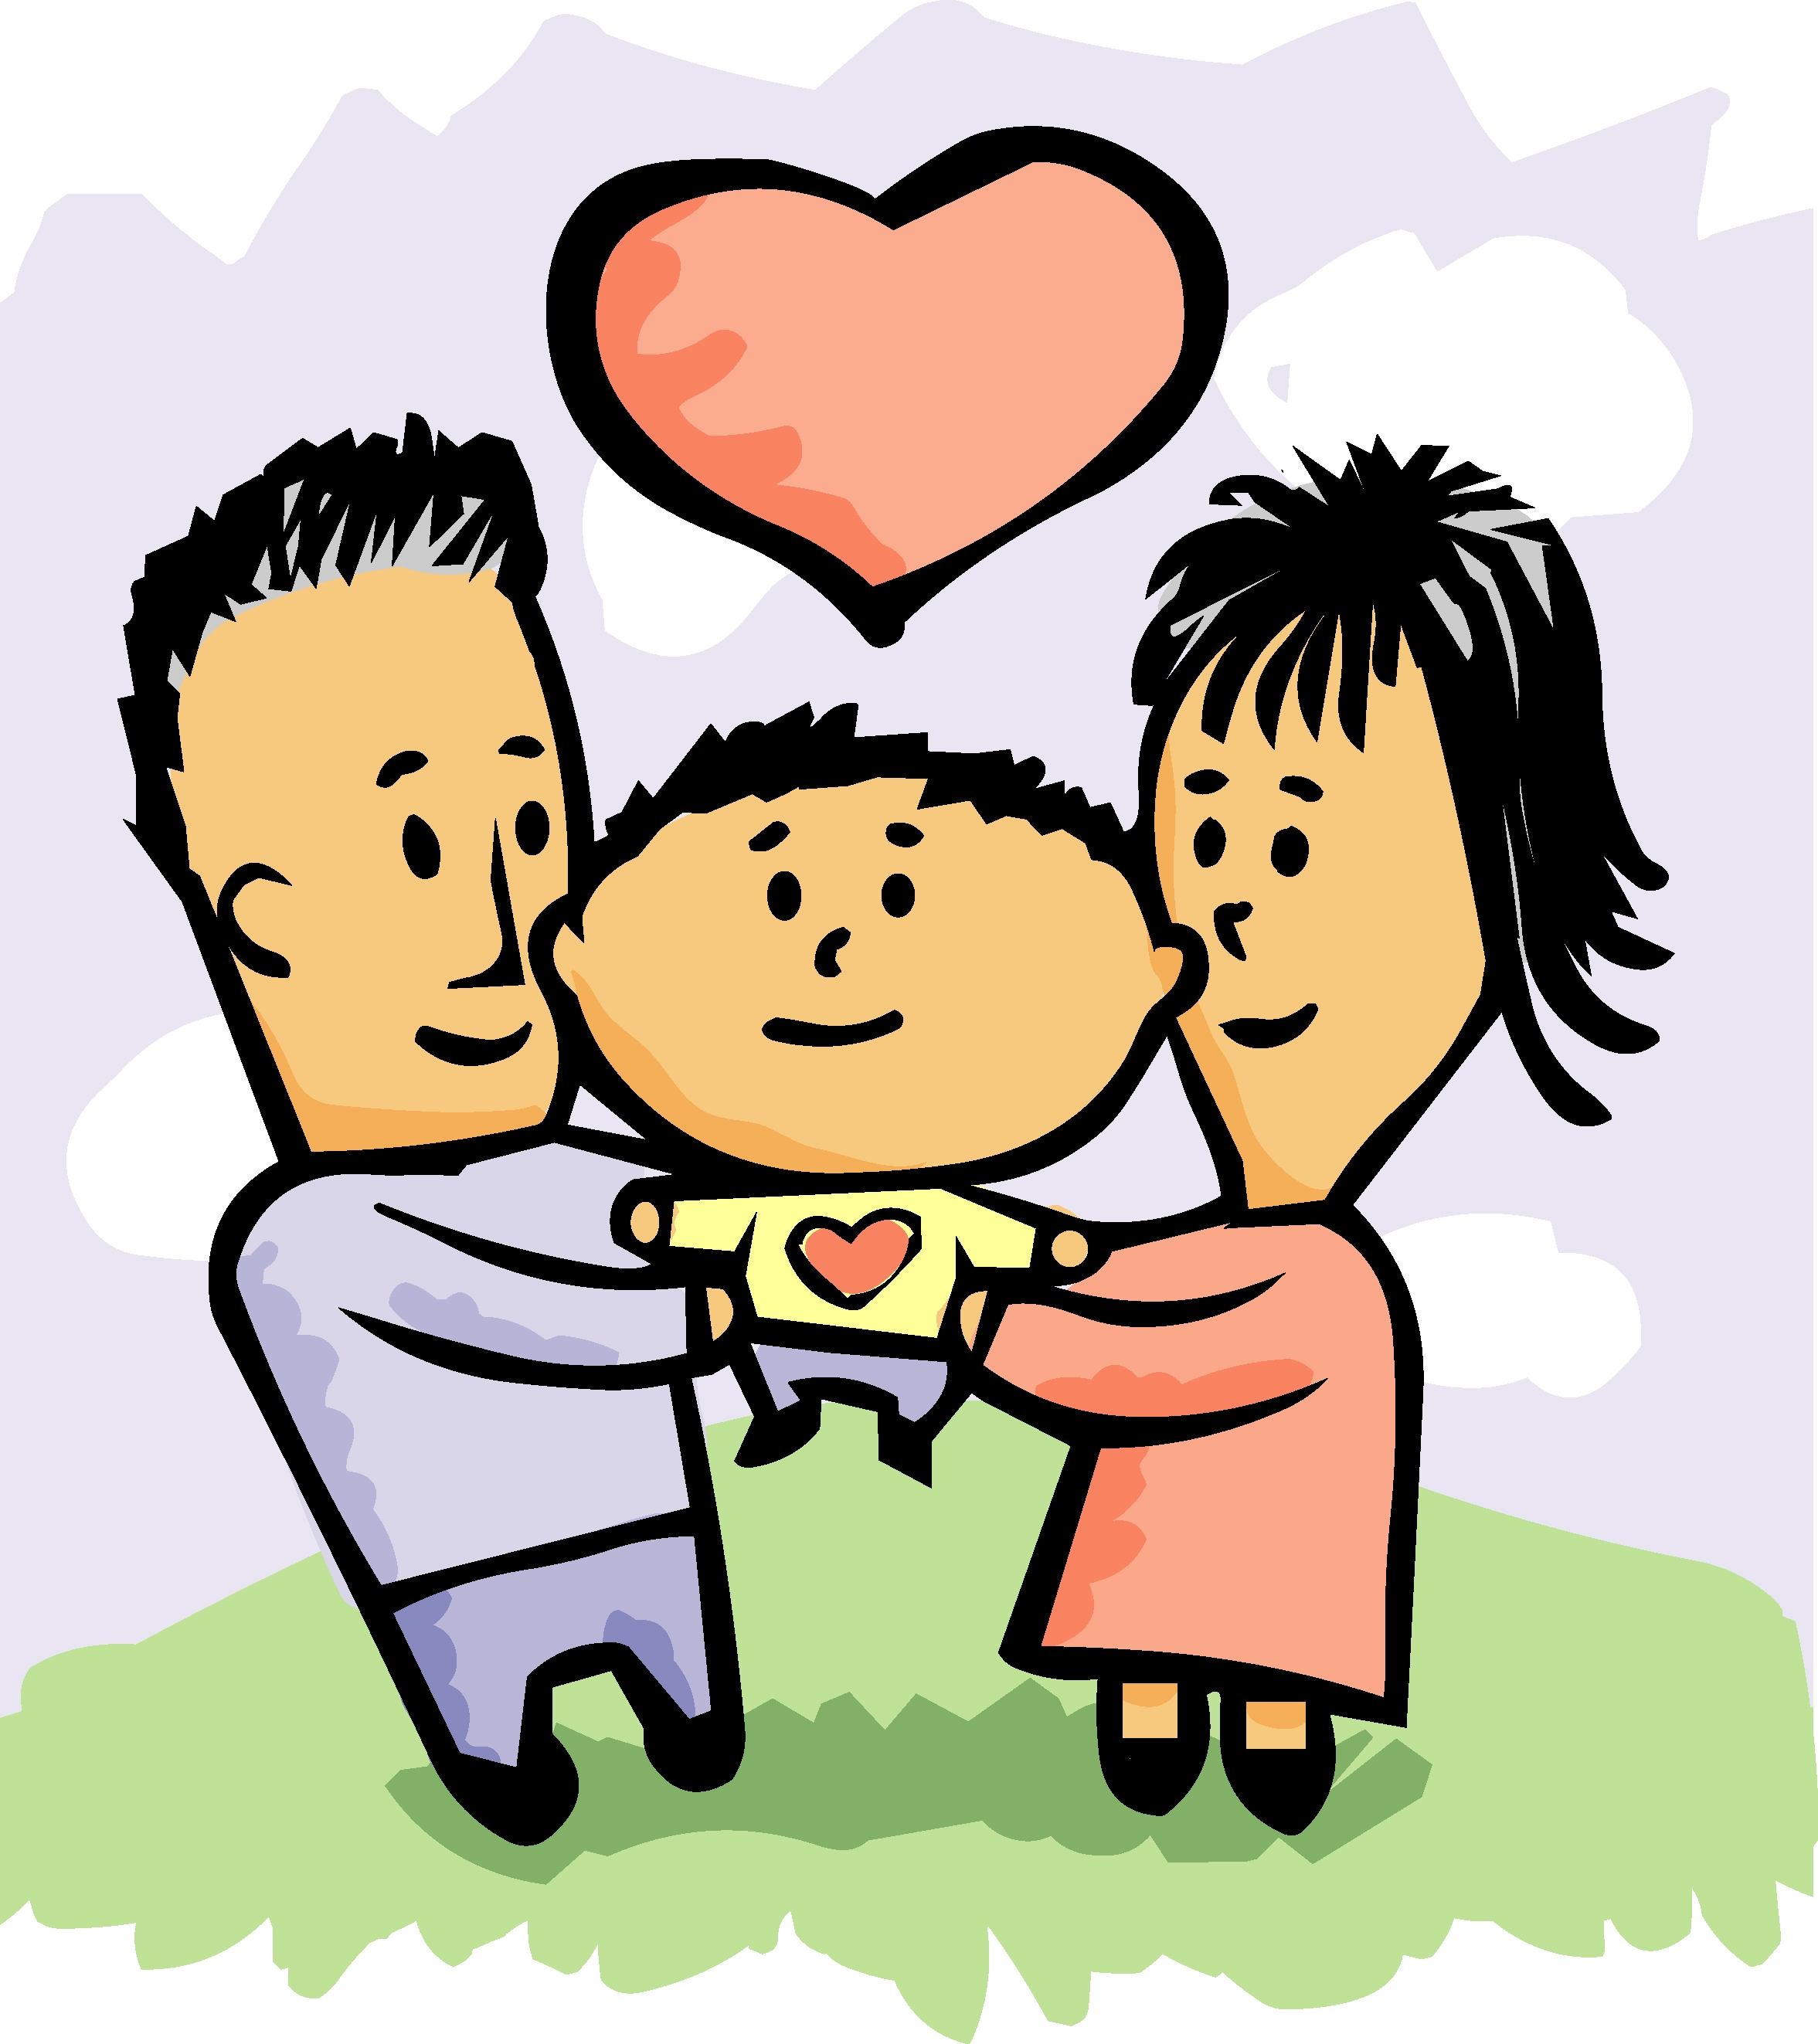 Clipart parent with kids image transparent library Clipart parent with kids - ClipartFest image transparent library